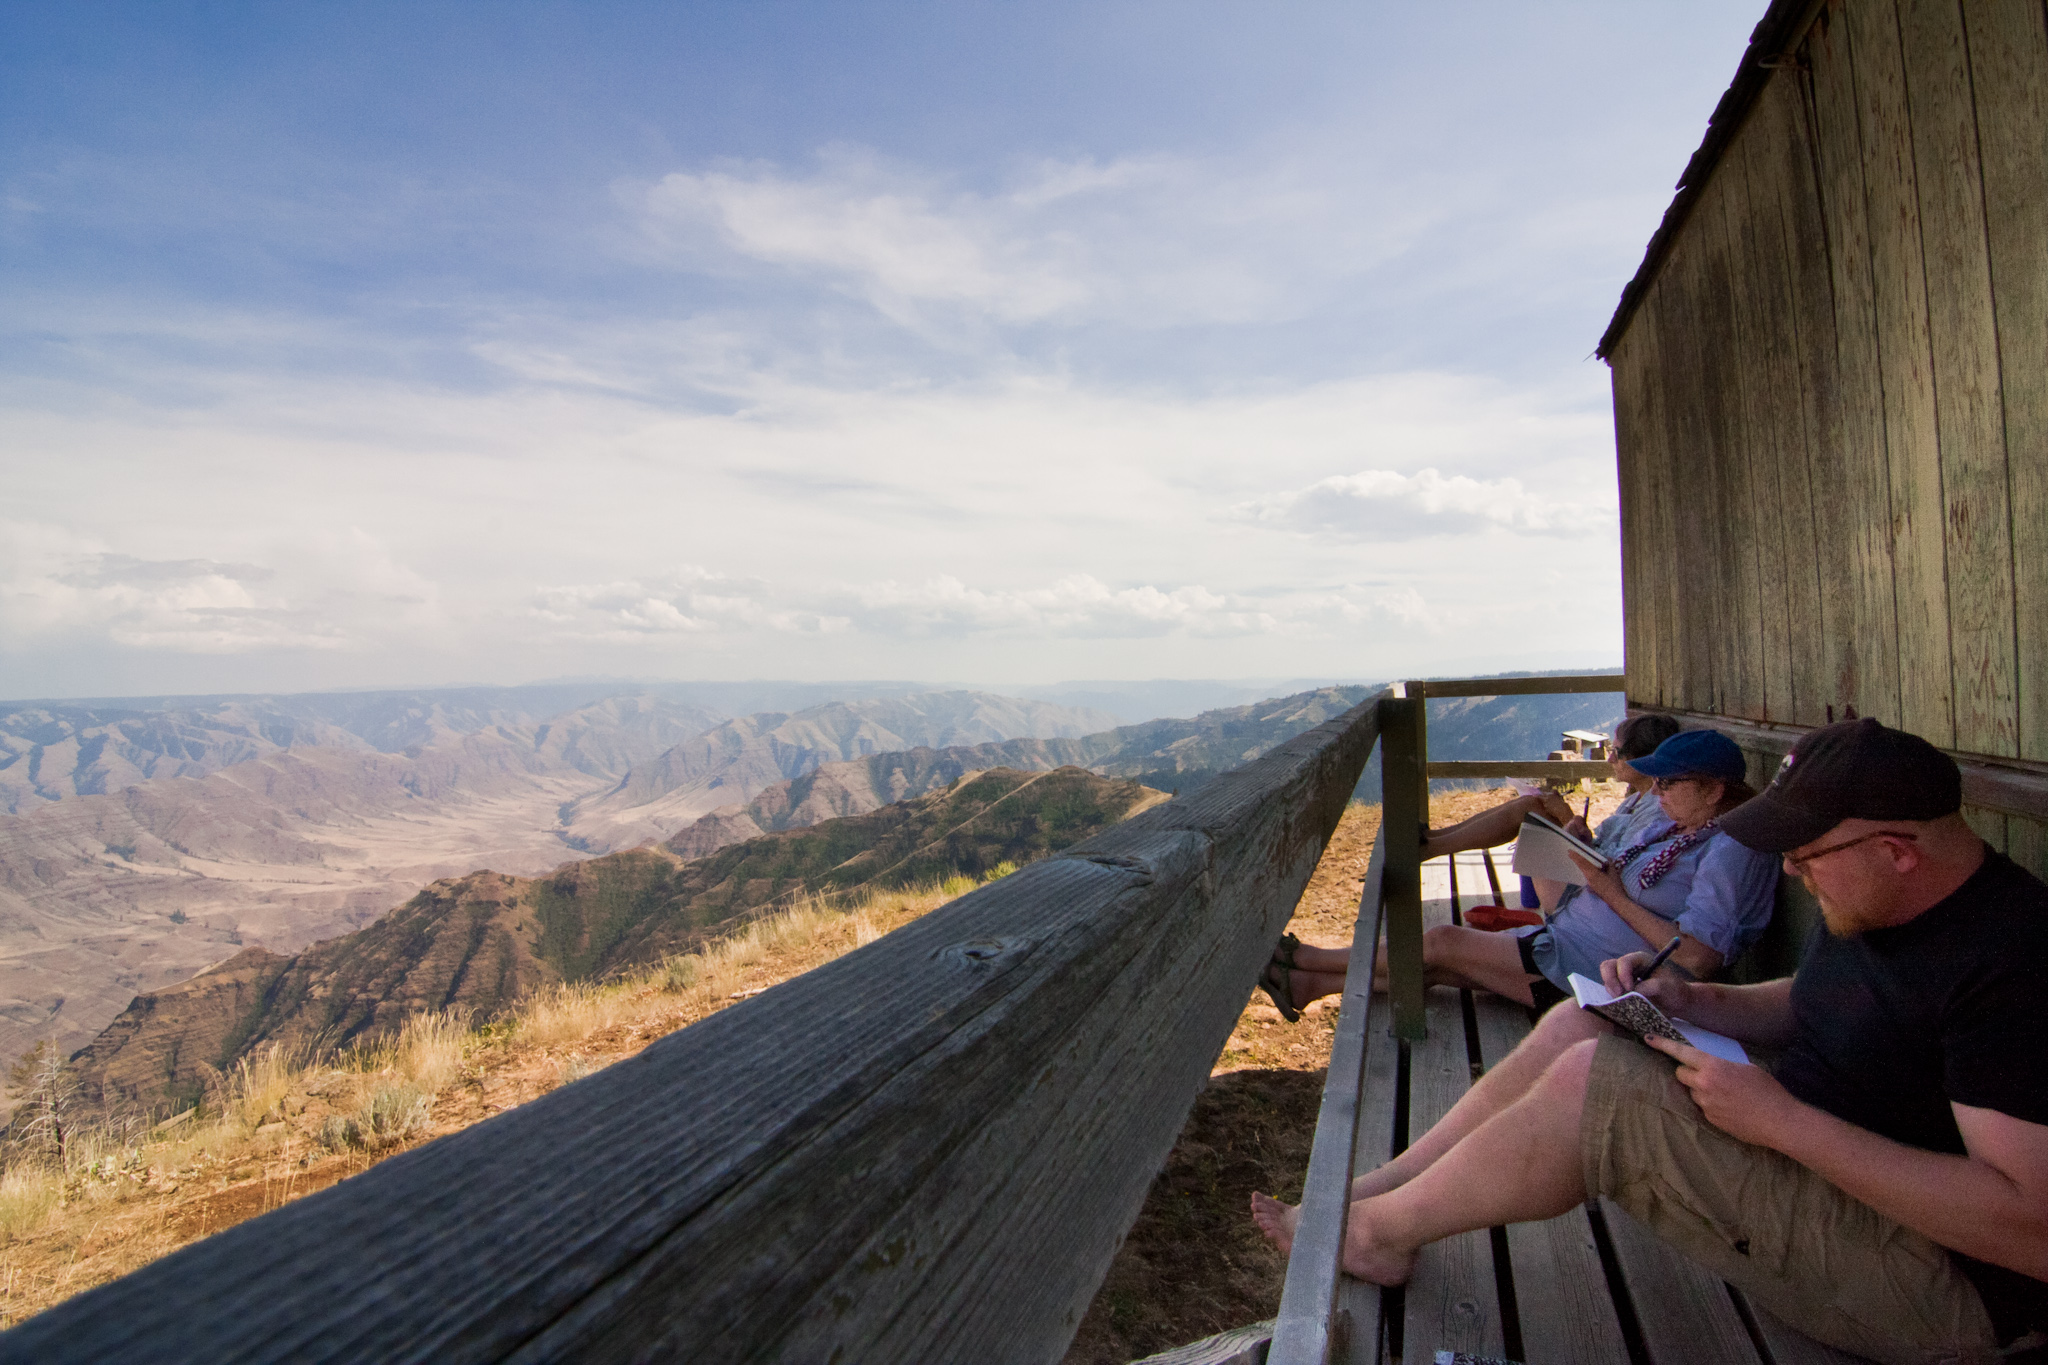 In love with the view and writing in journals, three writers sit on the deck of a fire outlook overlooking Hells Canyon in NE Oregon.